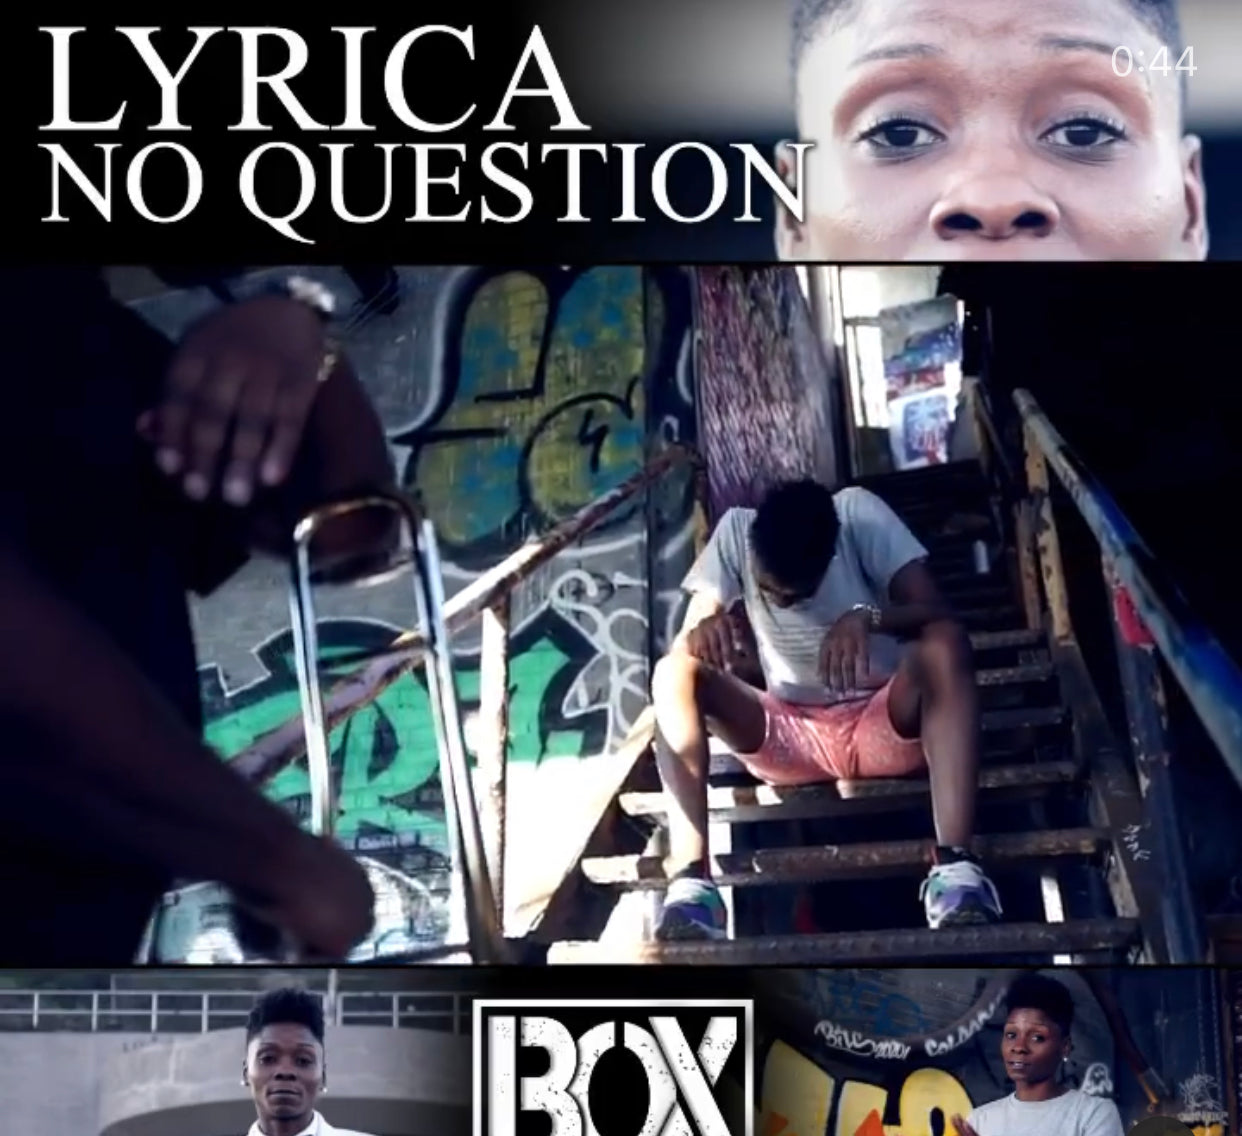 Lyrica NO QUESTION (OFFICIAL VIDEO)